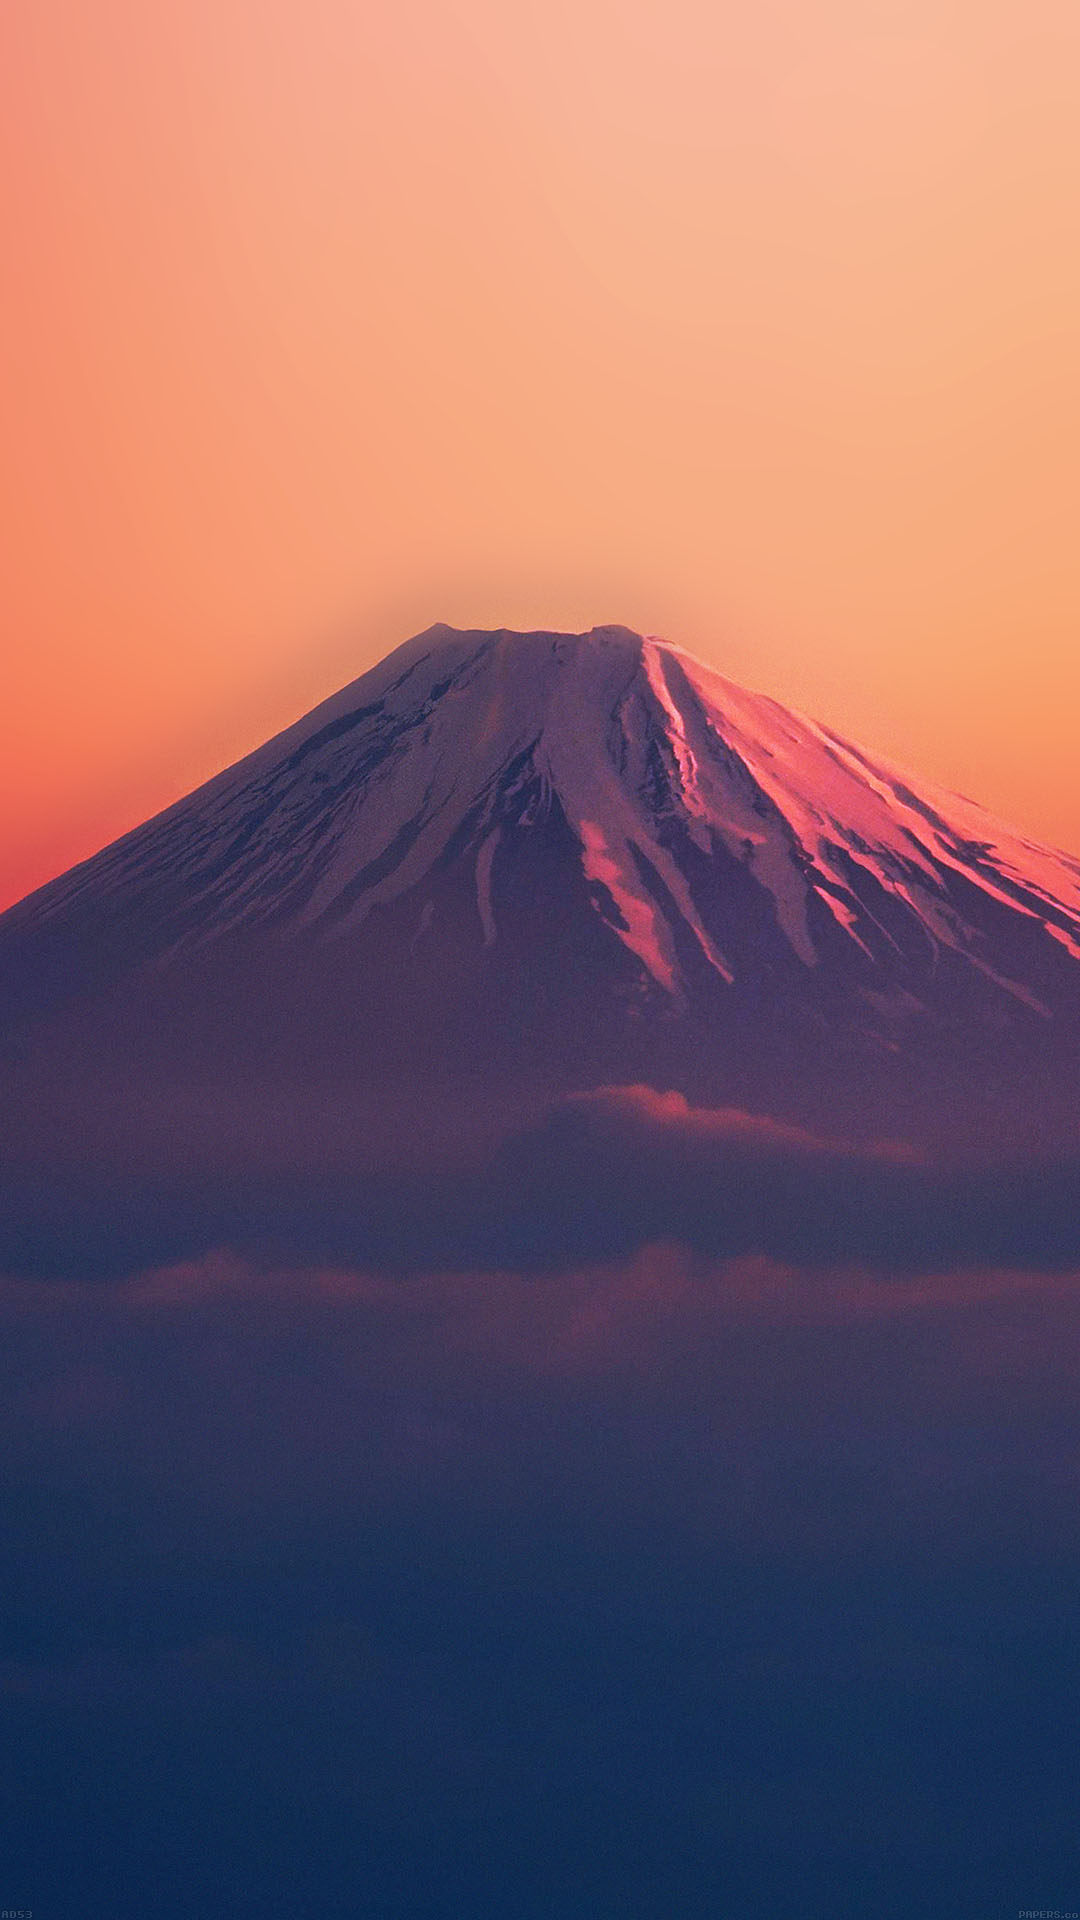 papers.co-ad53-fuji-red-mountain-alone-34-iphone6-plus-wallpaper.jpg